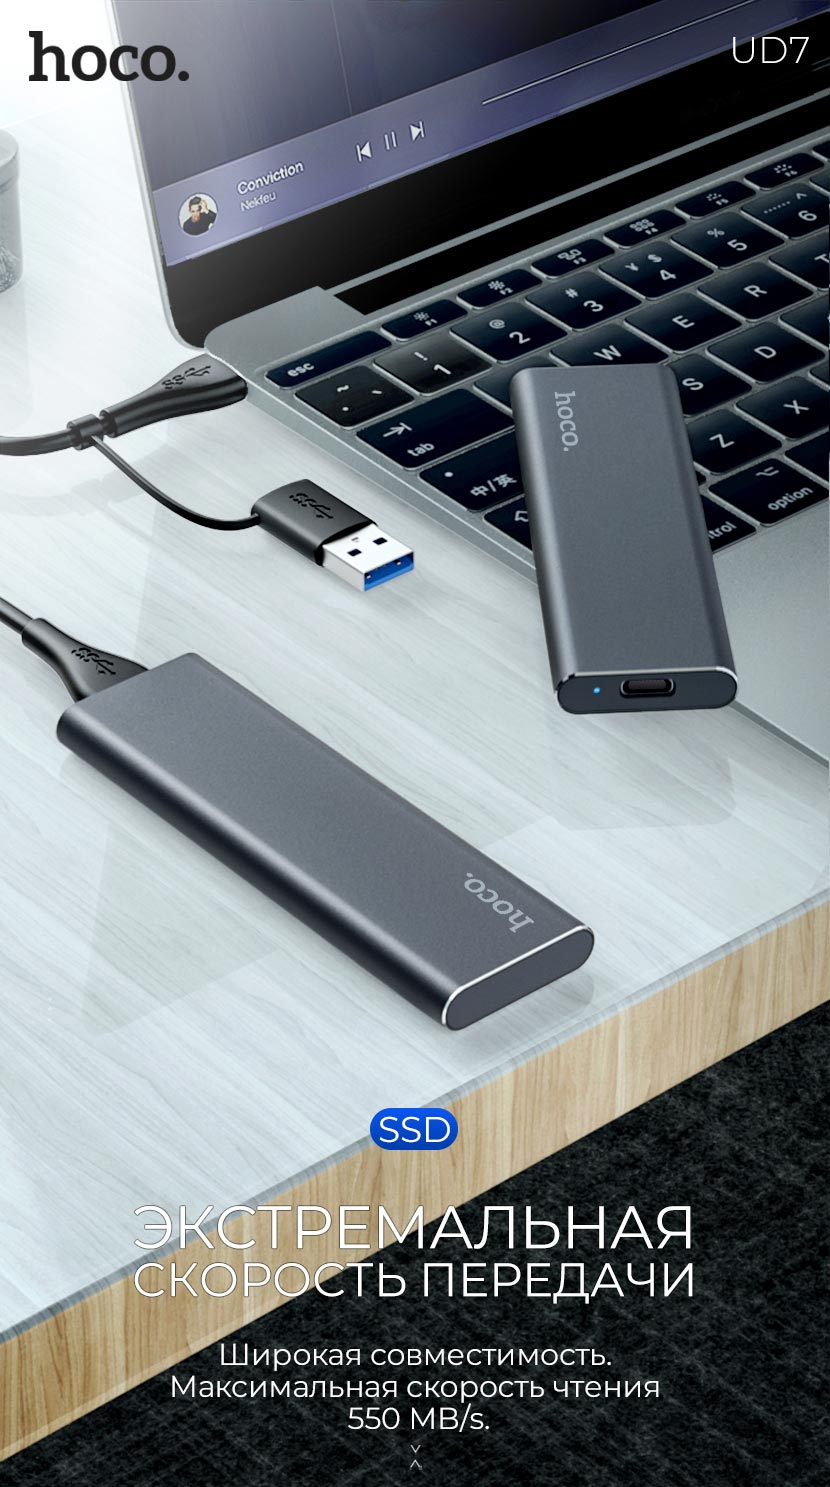 hoco news ud7 extreme speed external ssd main ru